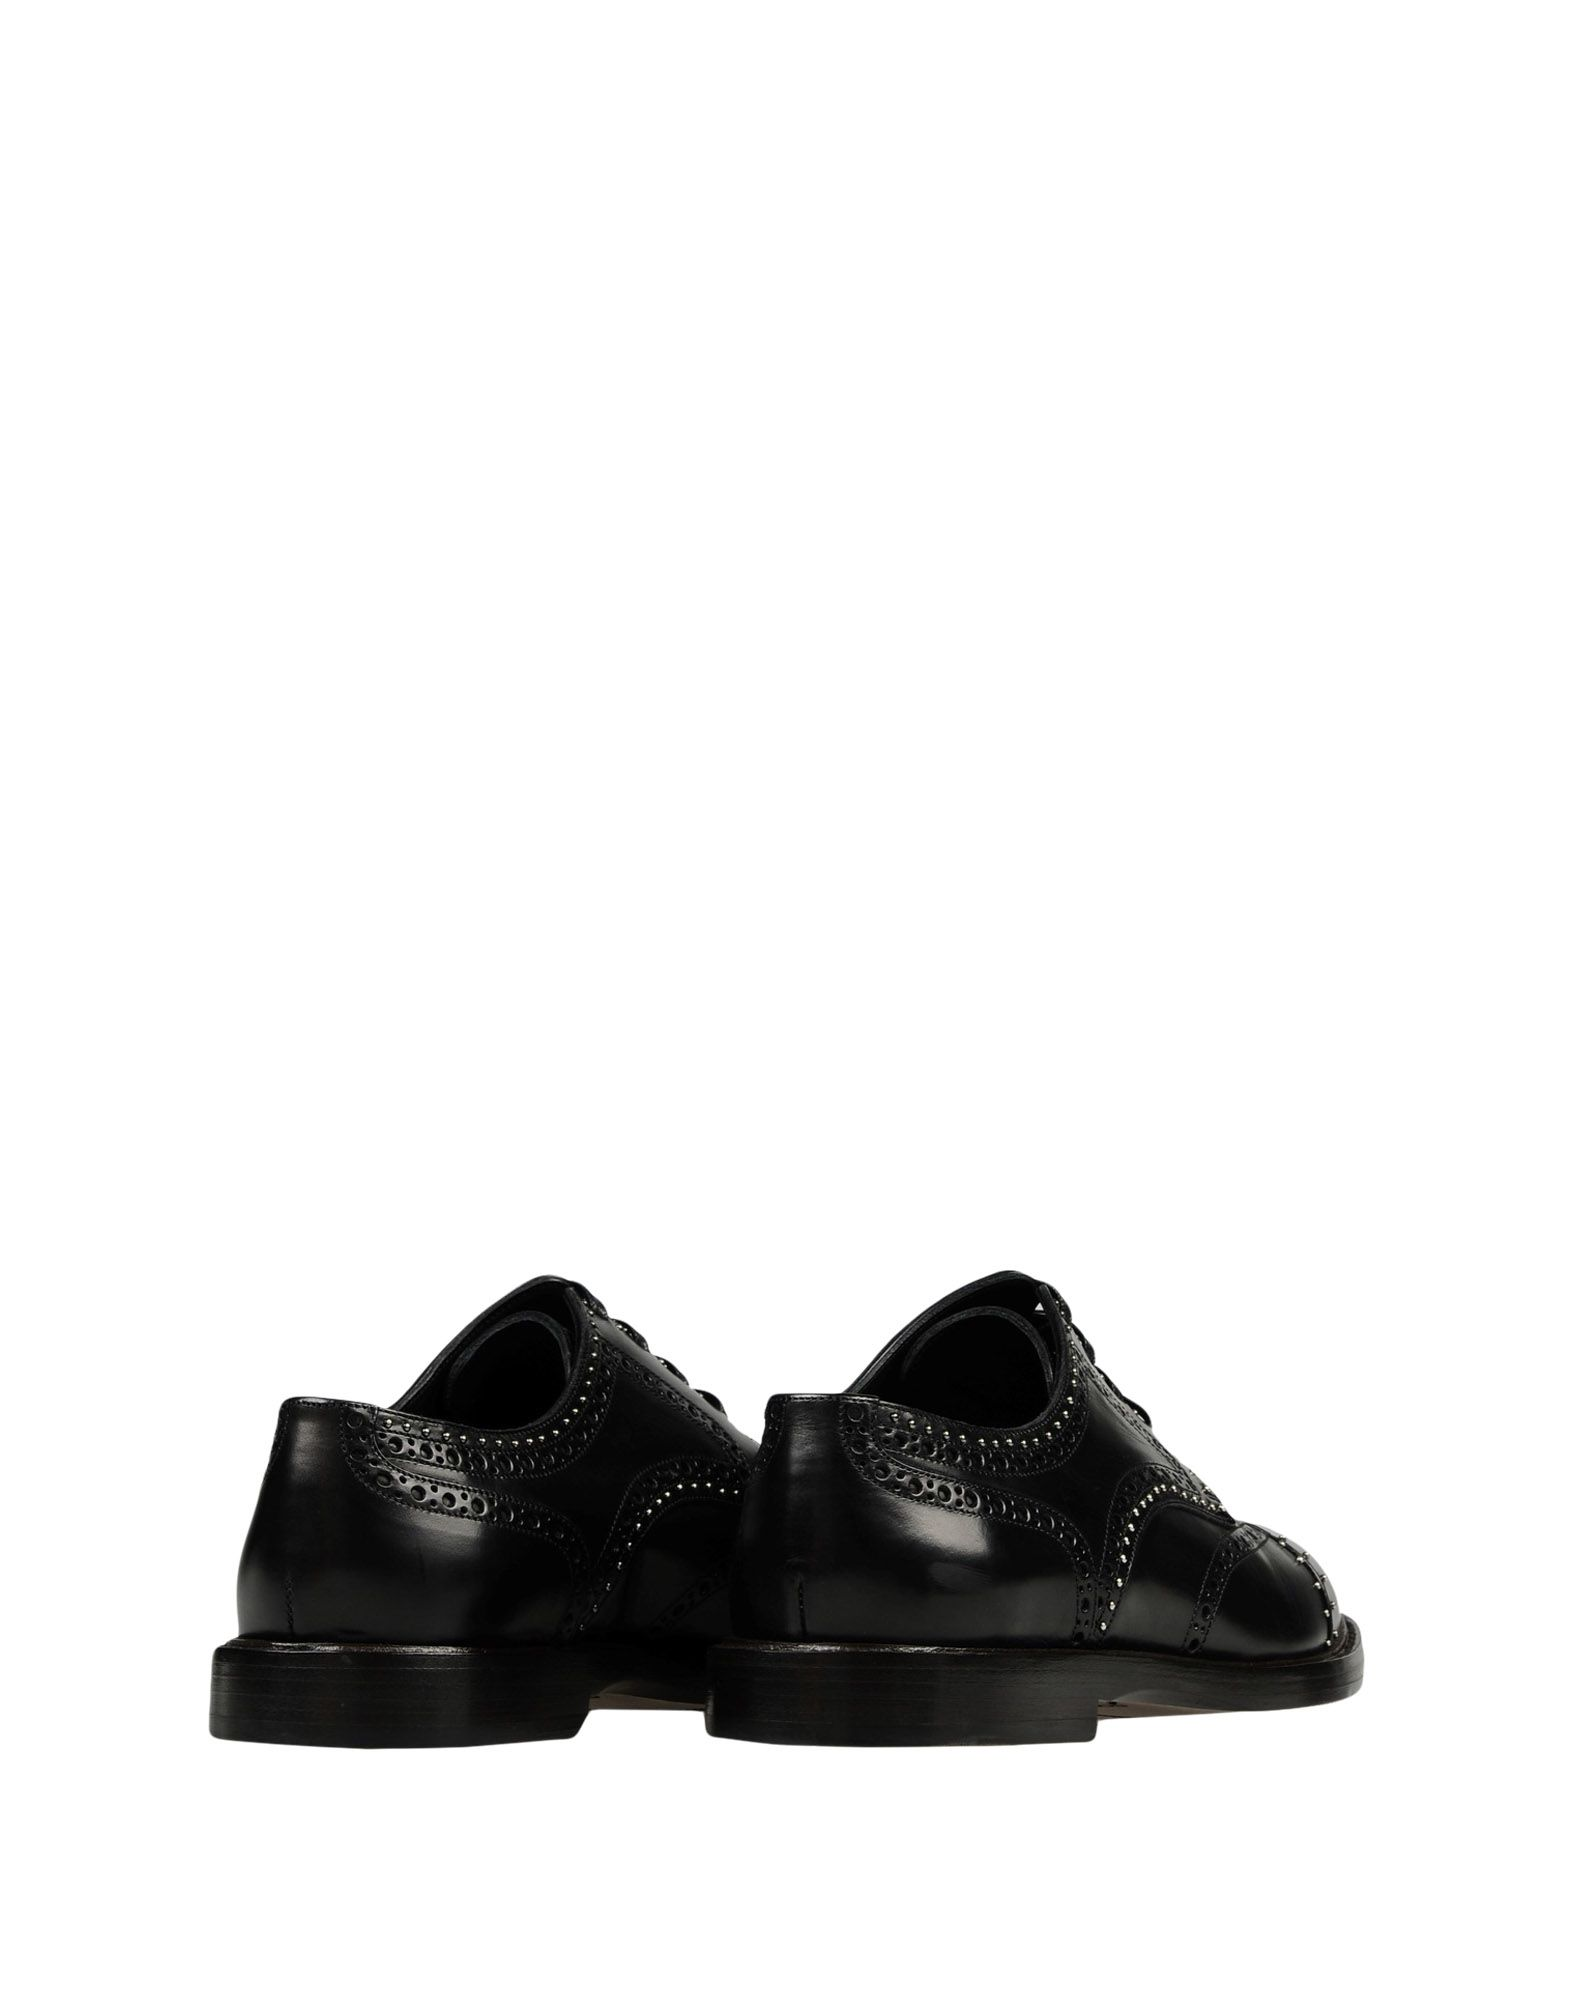 CHAUSSURES - Chaussures à lacetsDolce & Gabbana FcO0oBC